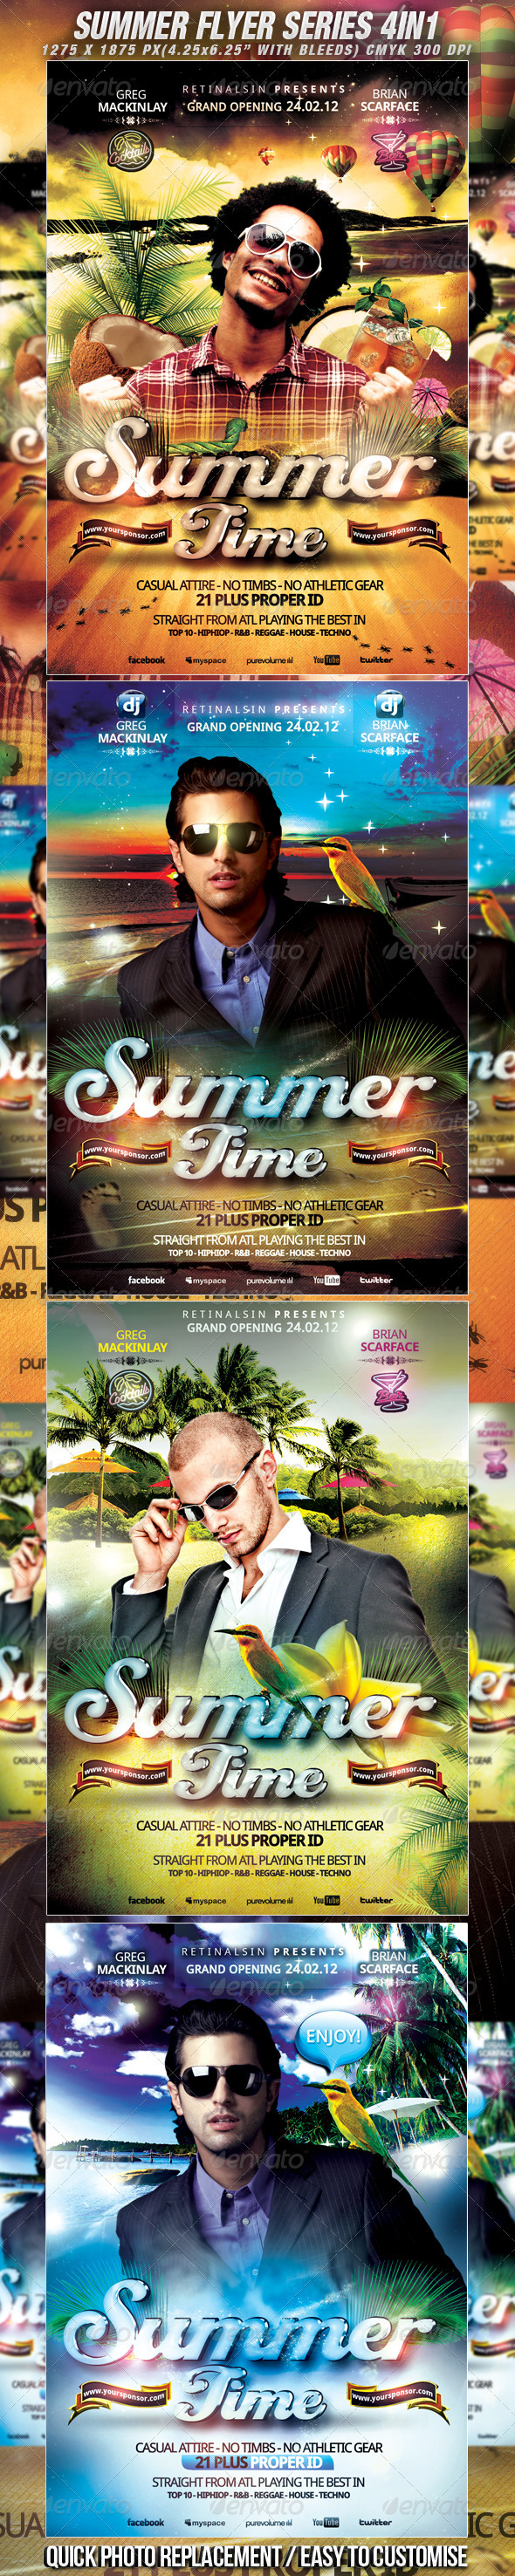 Summer Flyer Series - 4in1 / High Quality - Holidays Events